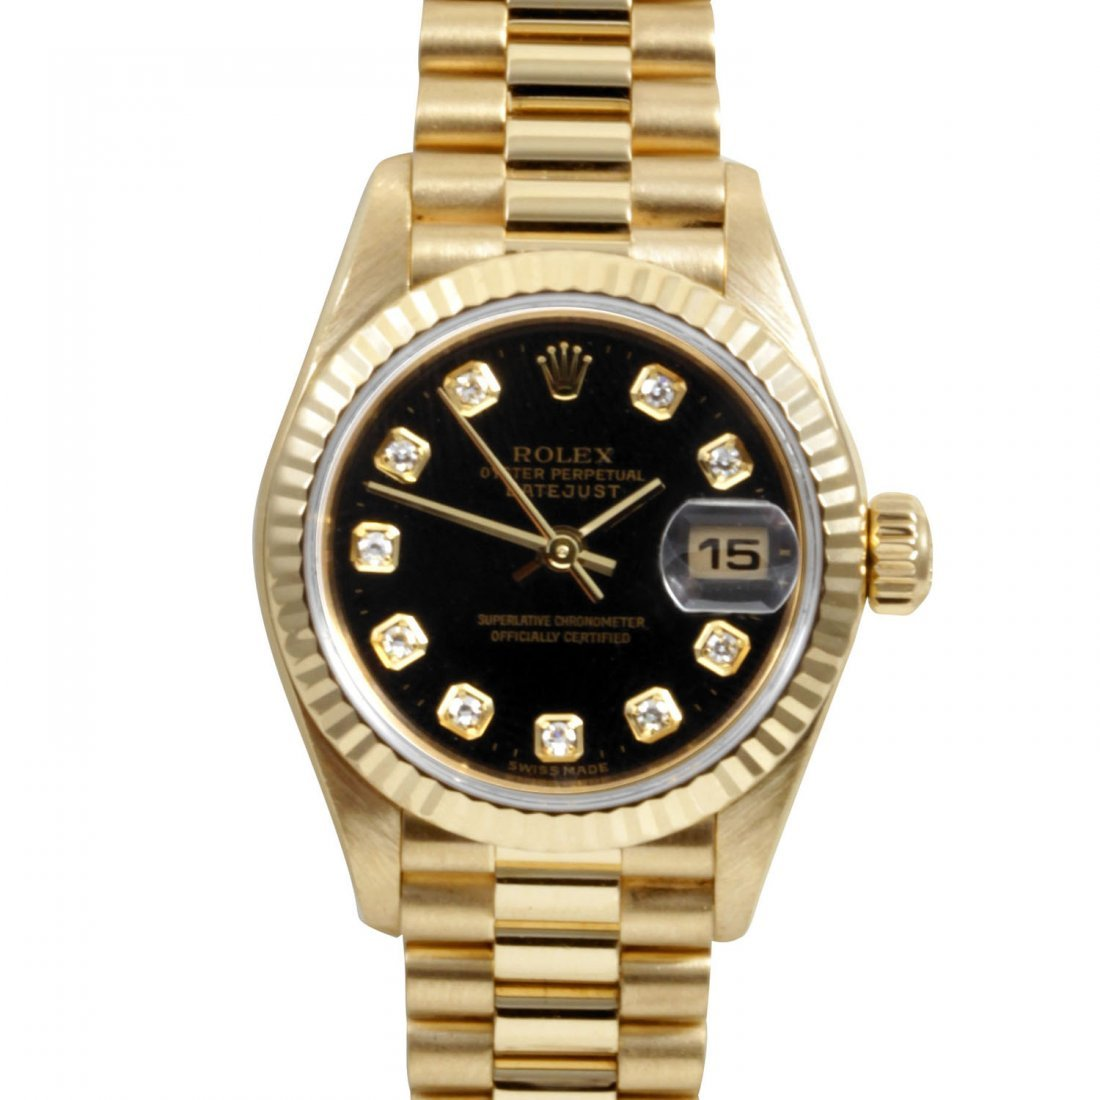 Rolex Ladies 18K Gold President - Black Diamond Dial